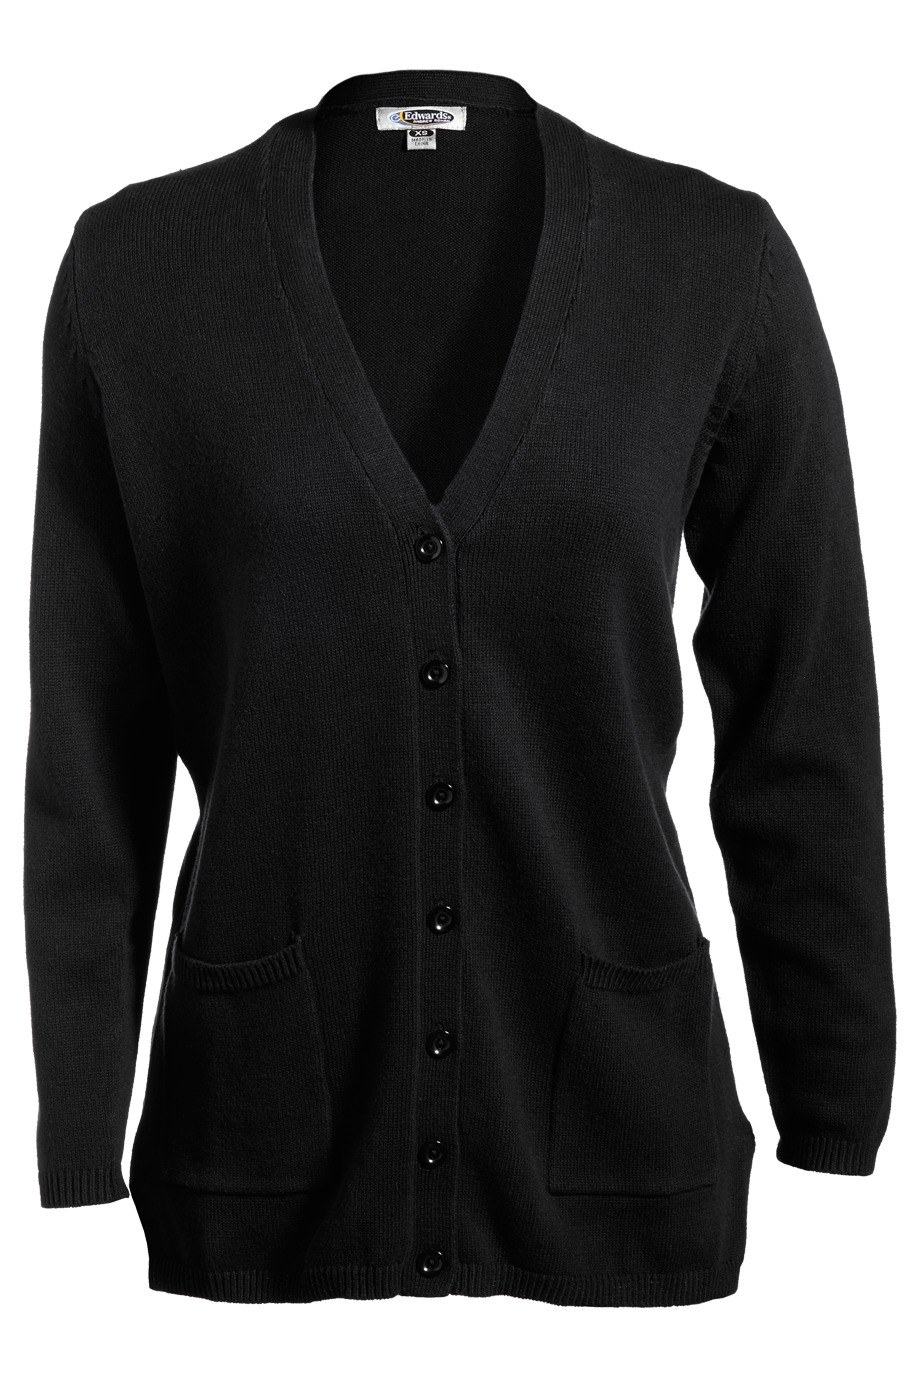 Edwards Garment 119 - Women's V-Neck Long Cardigan